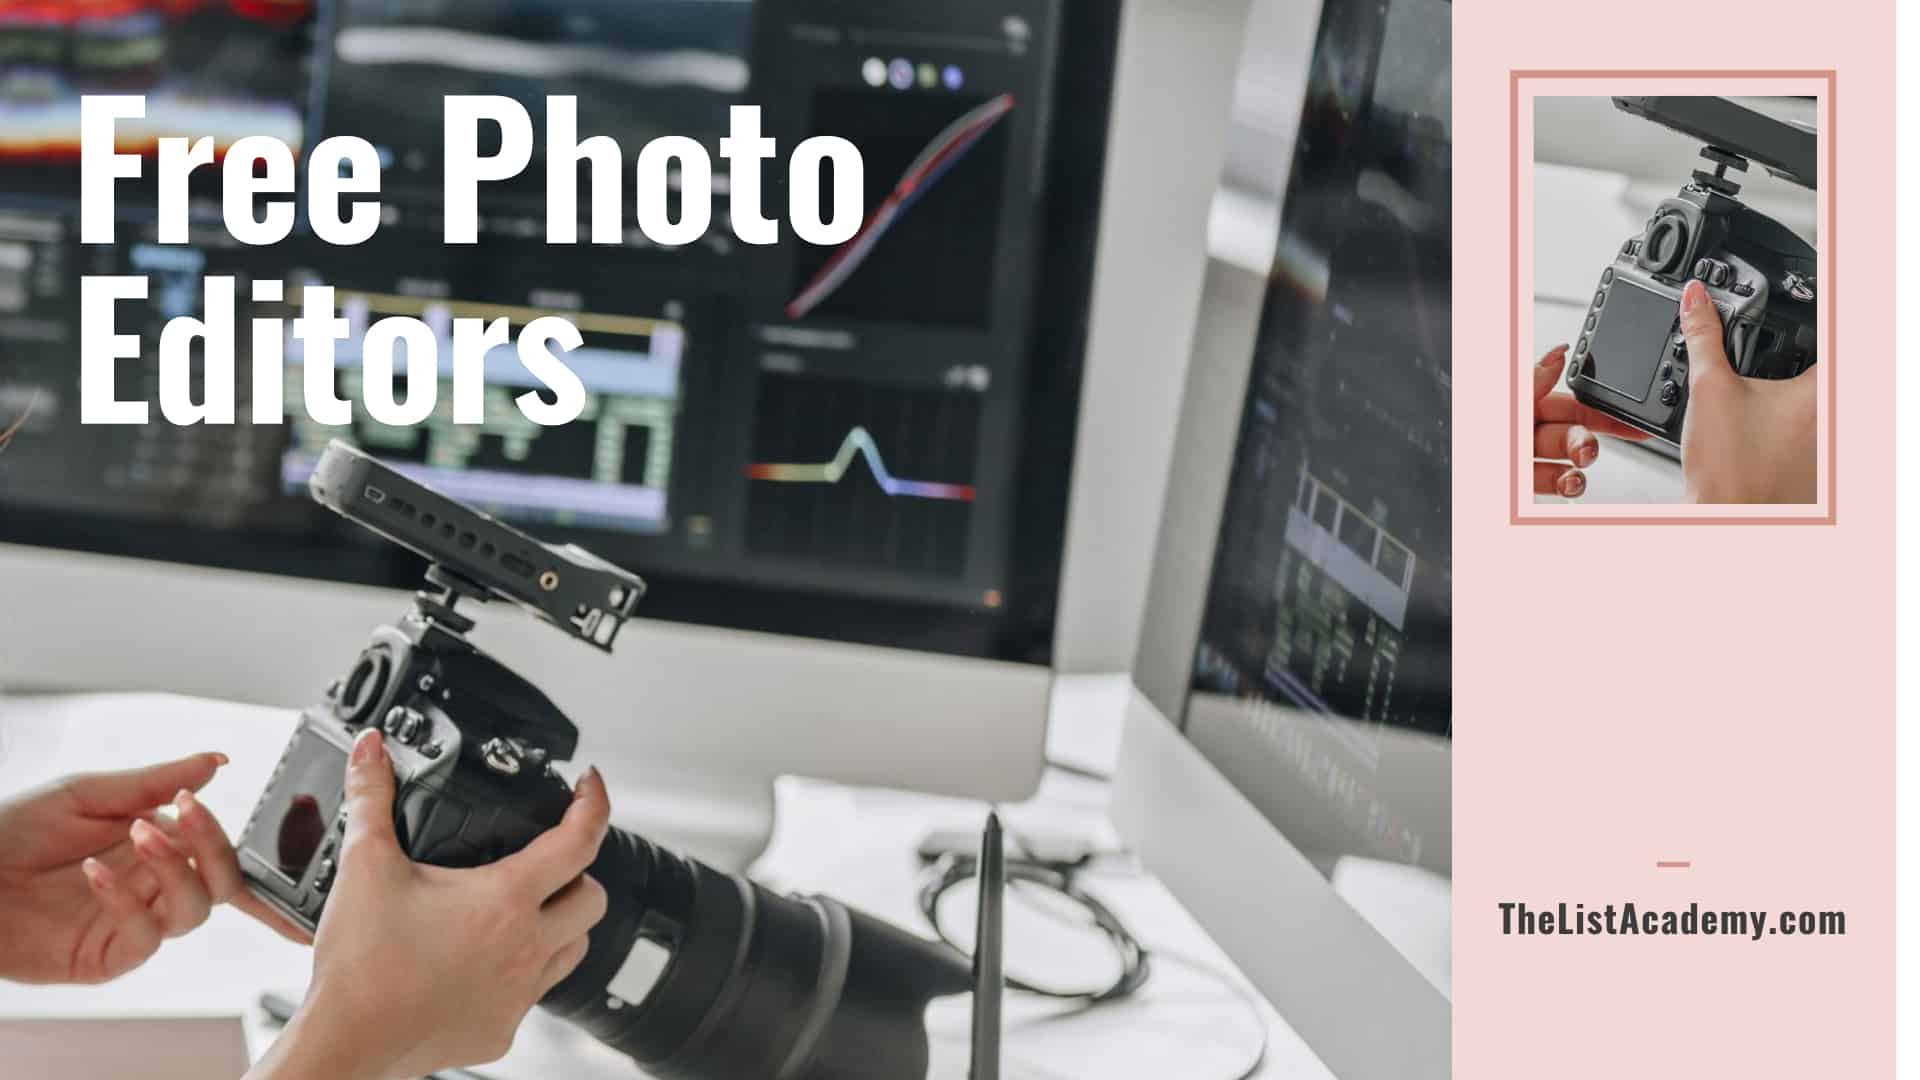 Cover Image For List : Best 28 Free Photo Editors